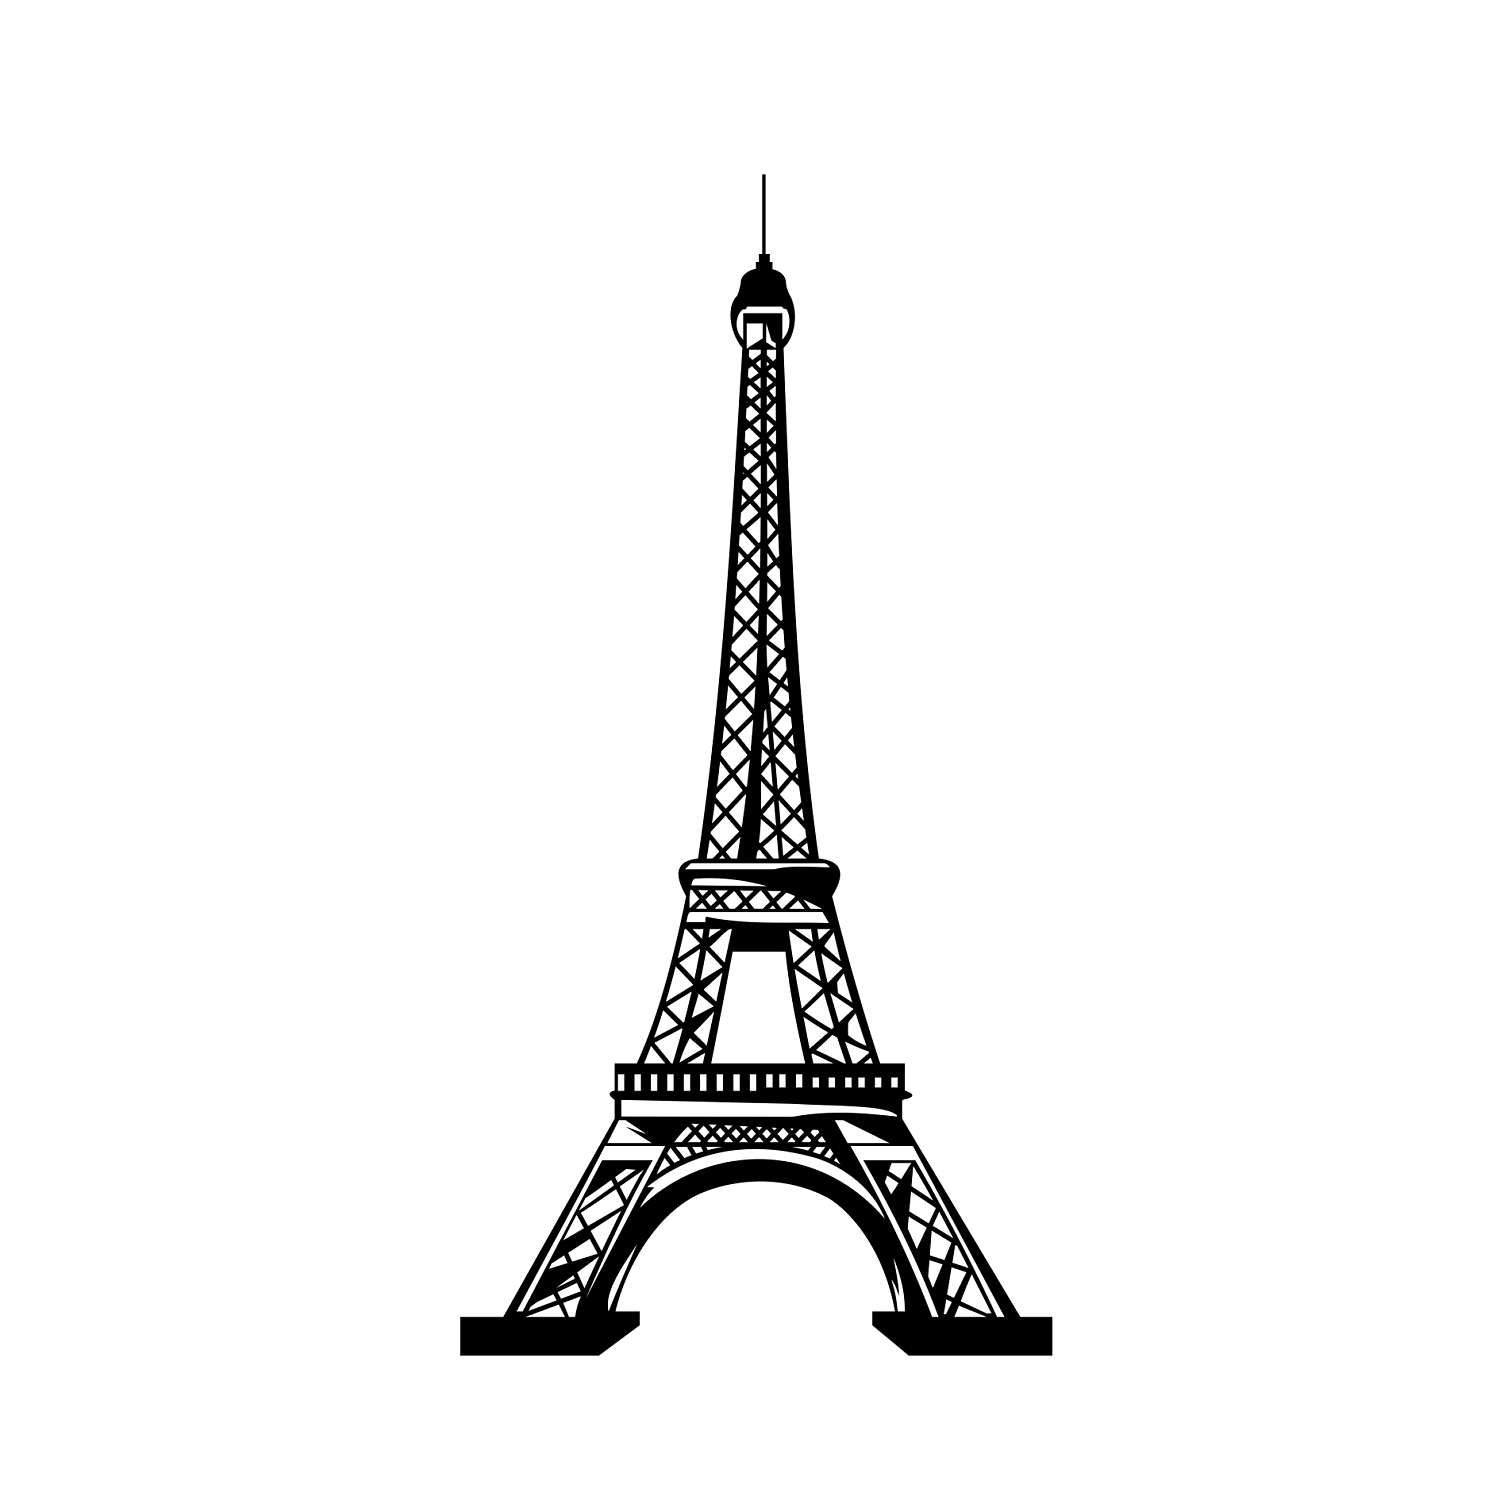 Tower clipart file. Pin szerz je s